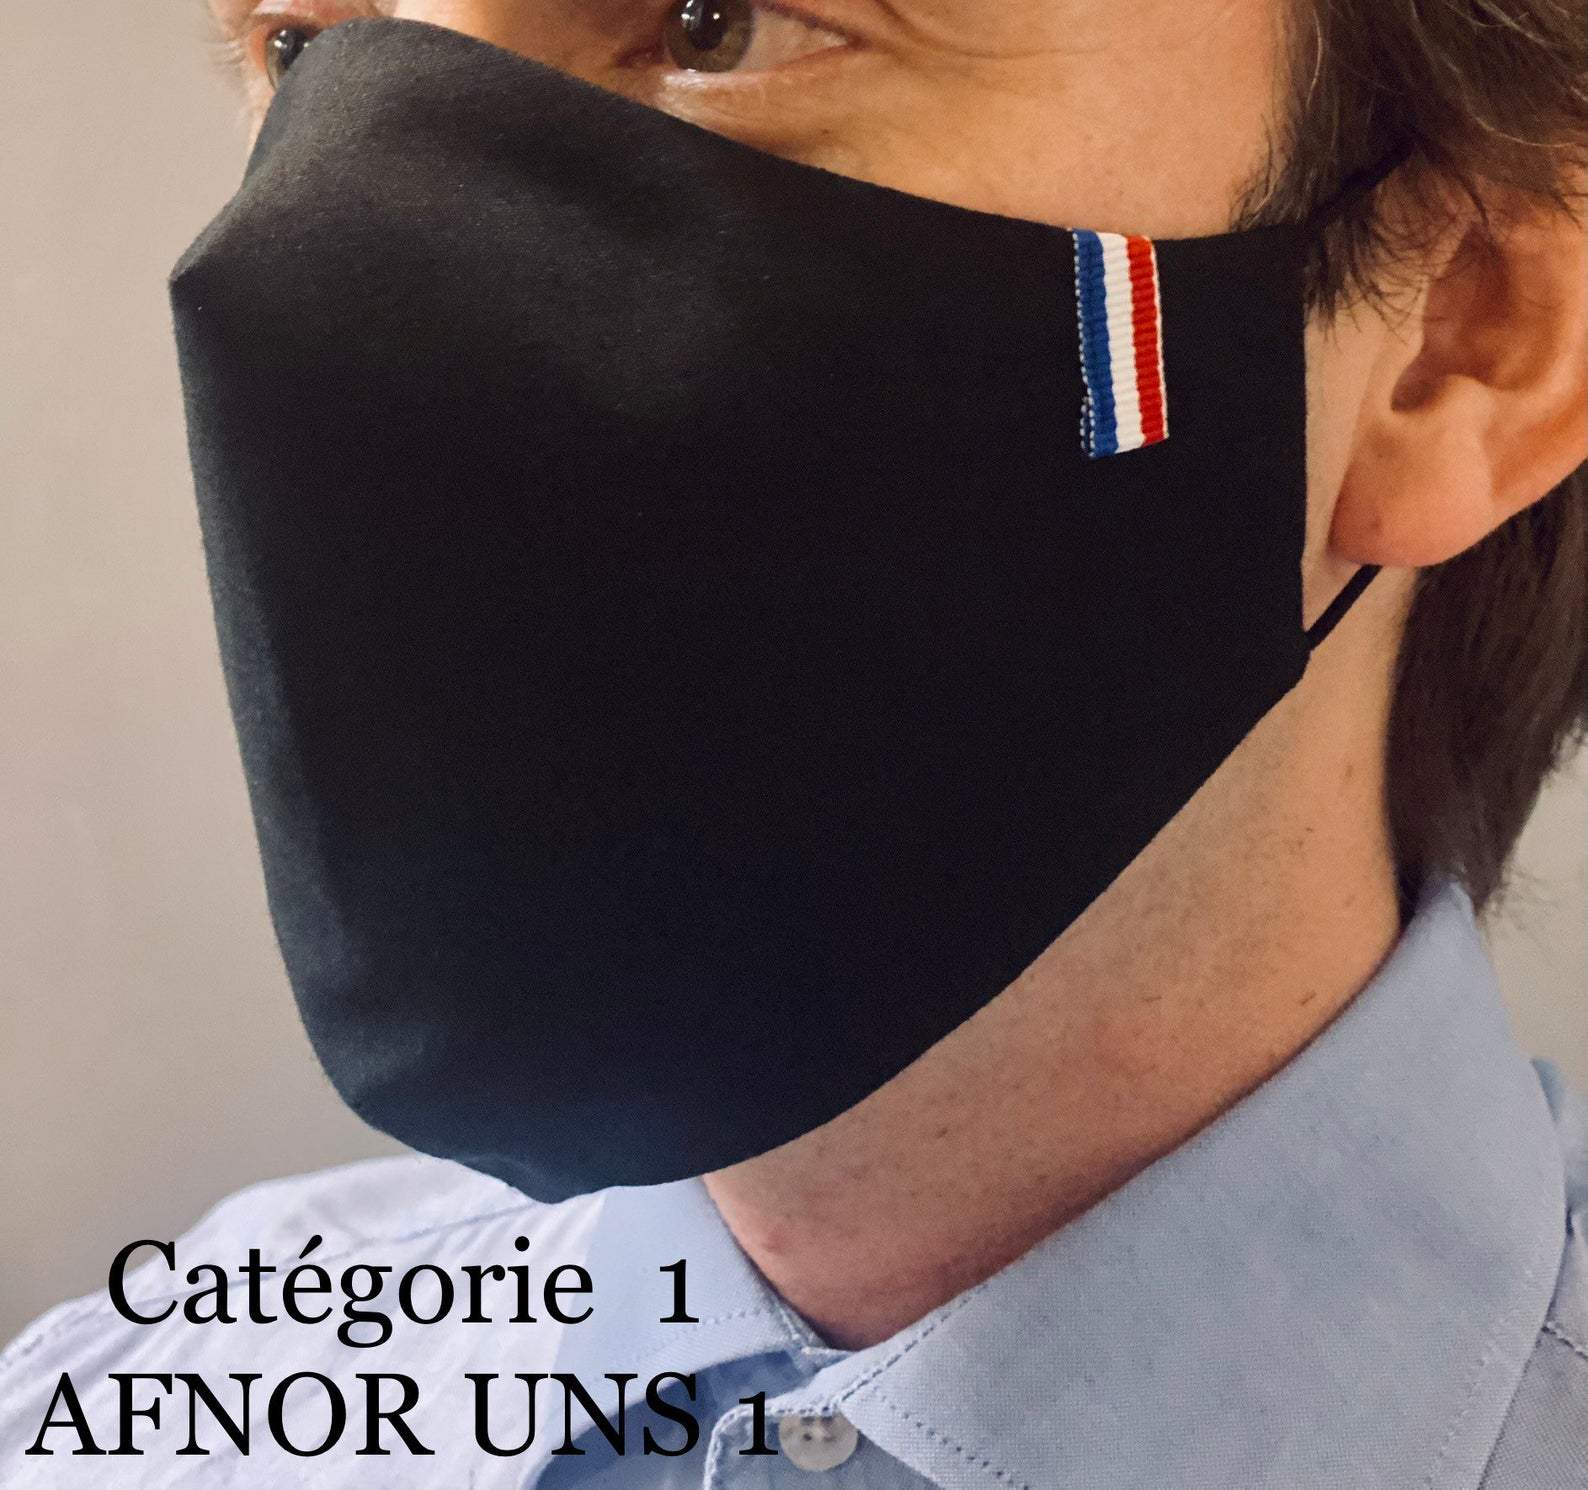 https://www.etsy.com/fr/listing/805402215/masque-noir-lavable-tissu-afnor?ga_order=most_relevant&ga_search_type=all&ga_view_type=gallery&ga_search_query=masques+afnor+lavable&ref=sc_gallery-1-2&from_market_listing_grid_ad=1&plkey=174b8a40b40b6391d097a70514e5460c652e23d7%3A805402215&pro=1